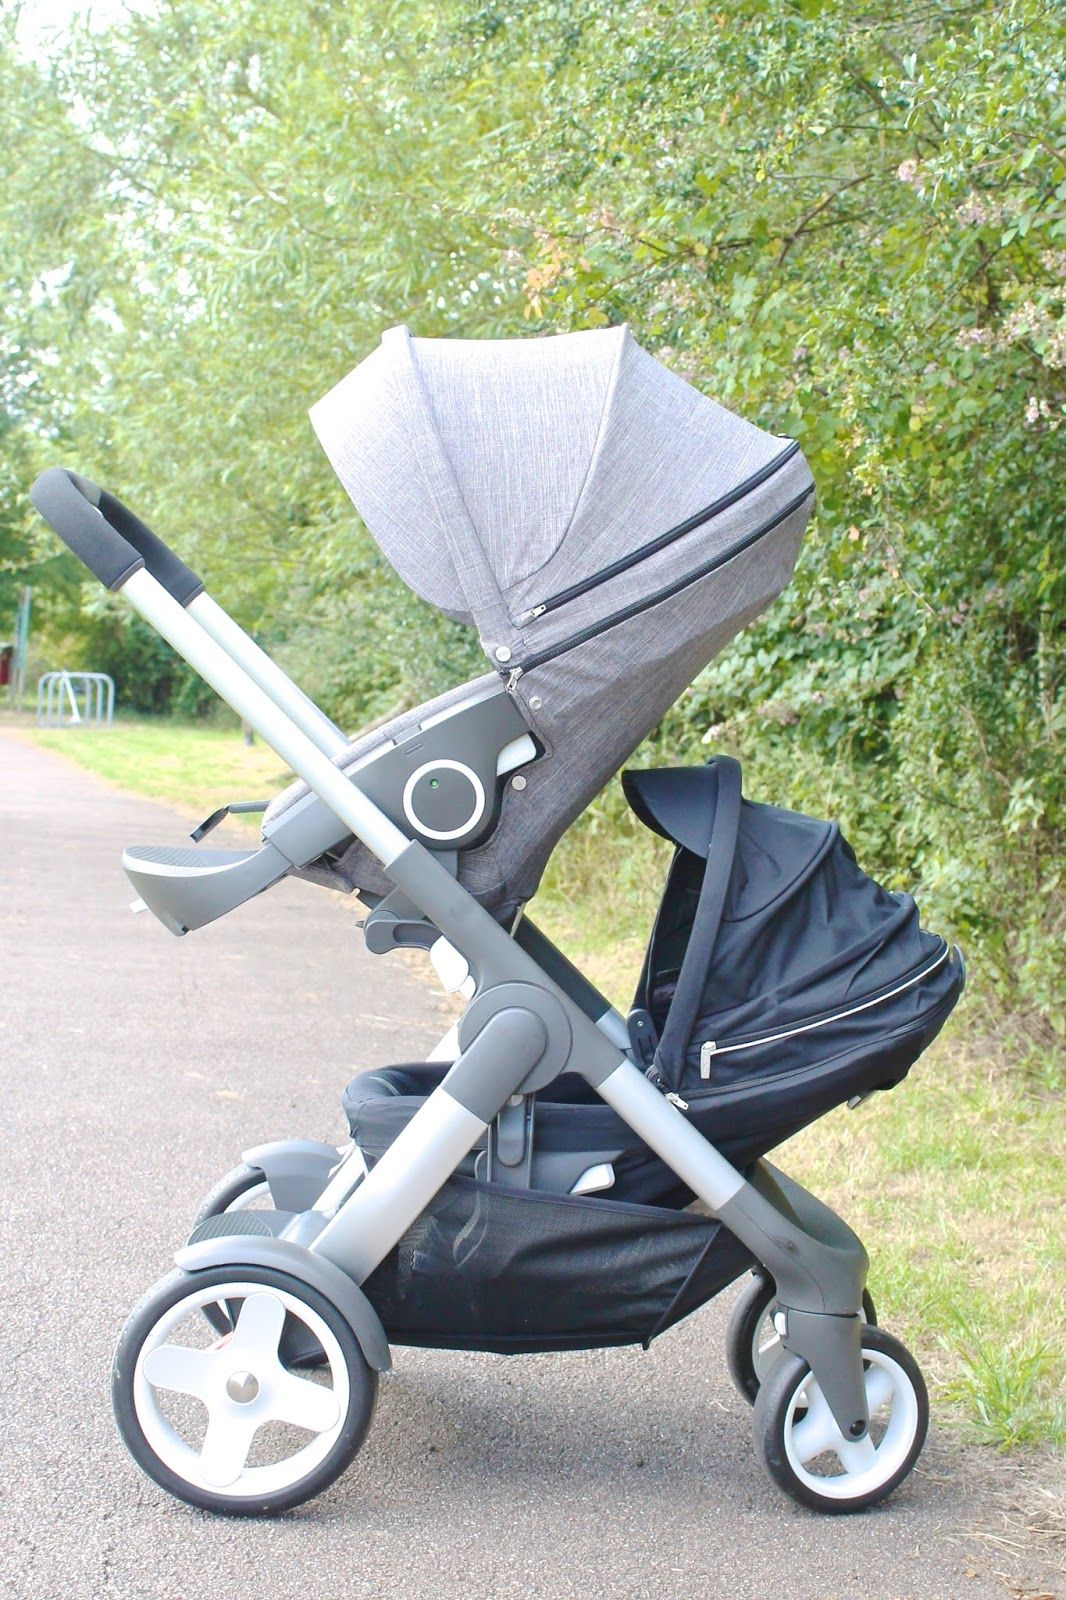 Stokke Crusi Sibling Solution 1 Criancas 1 Baby Strollers Baby